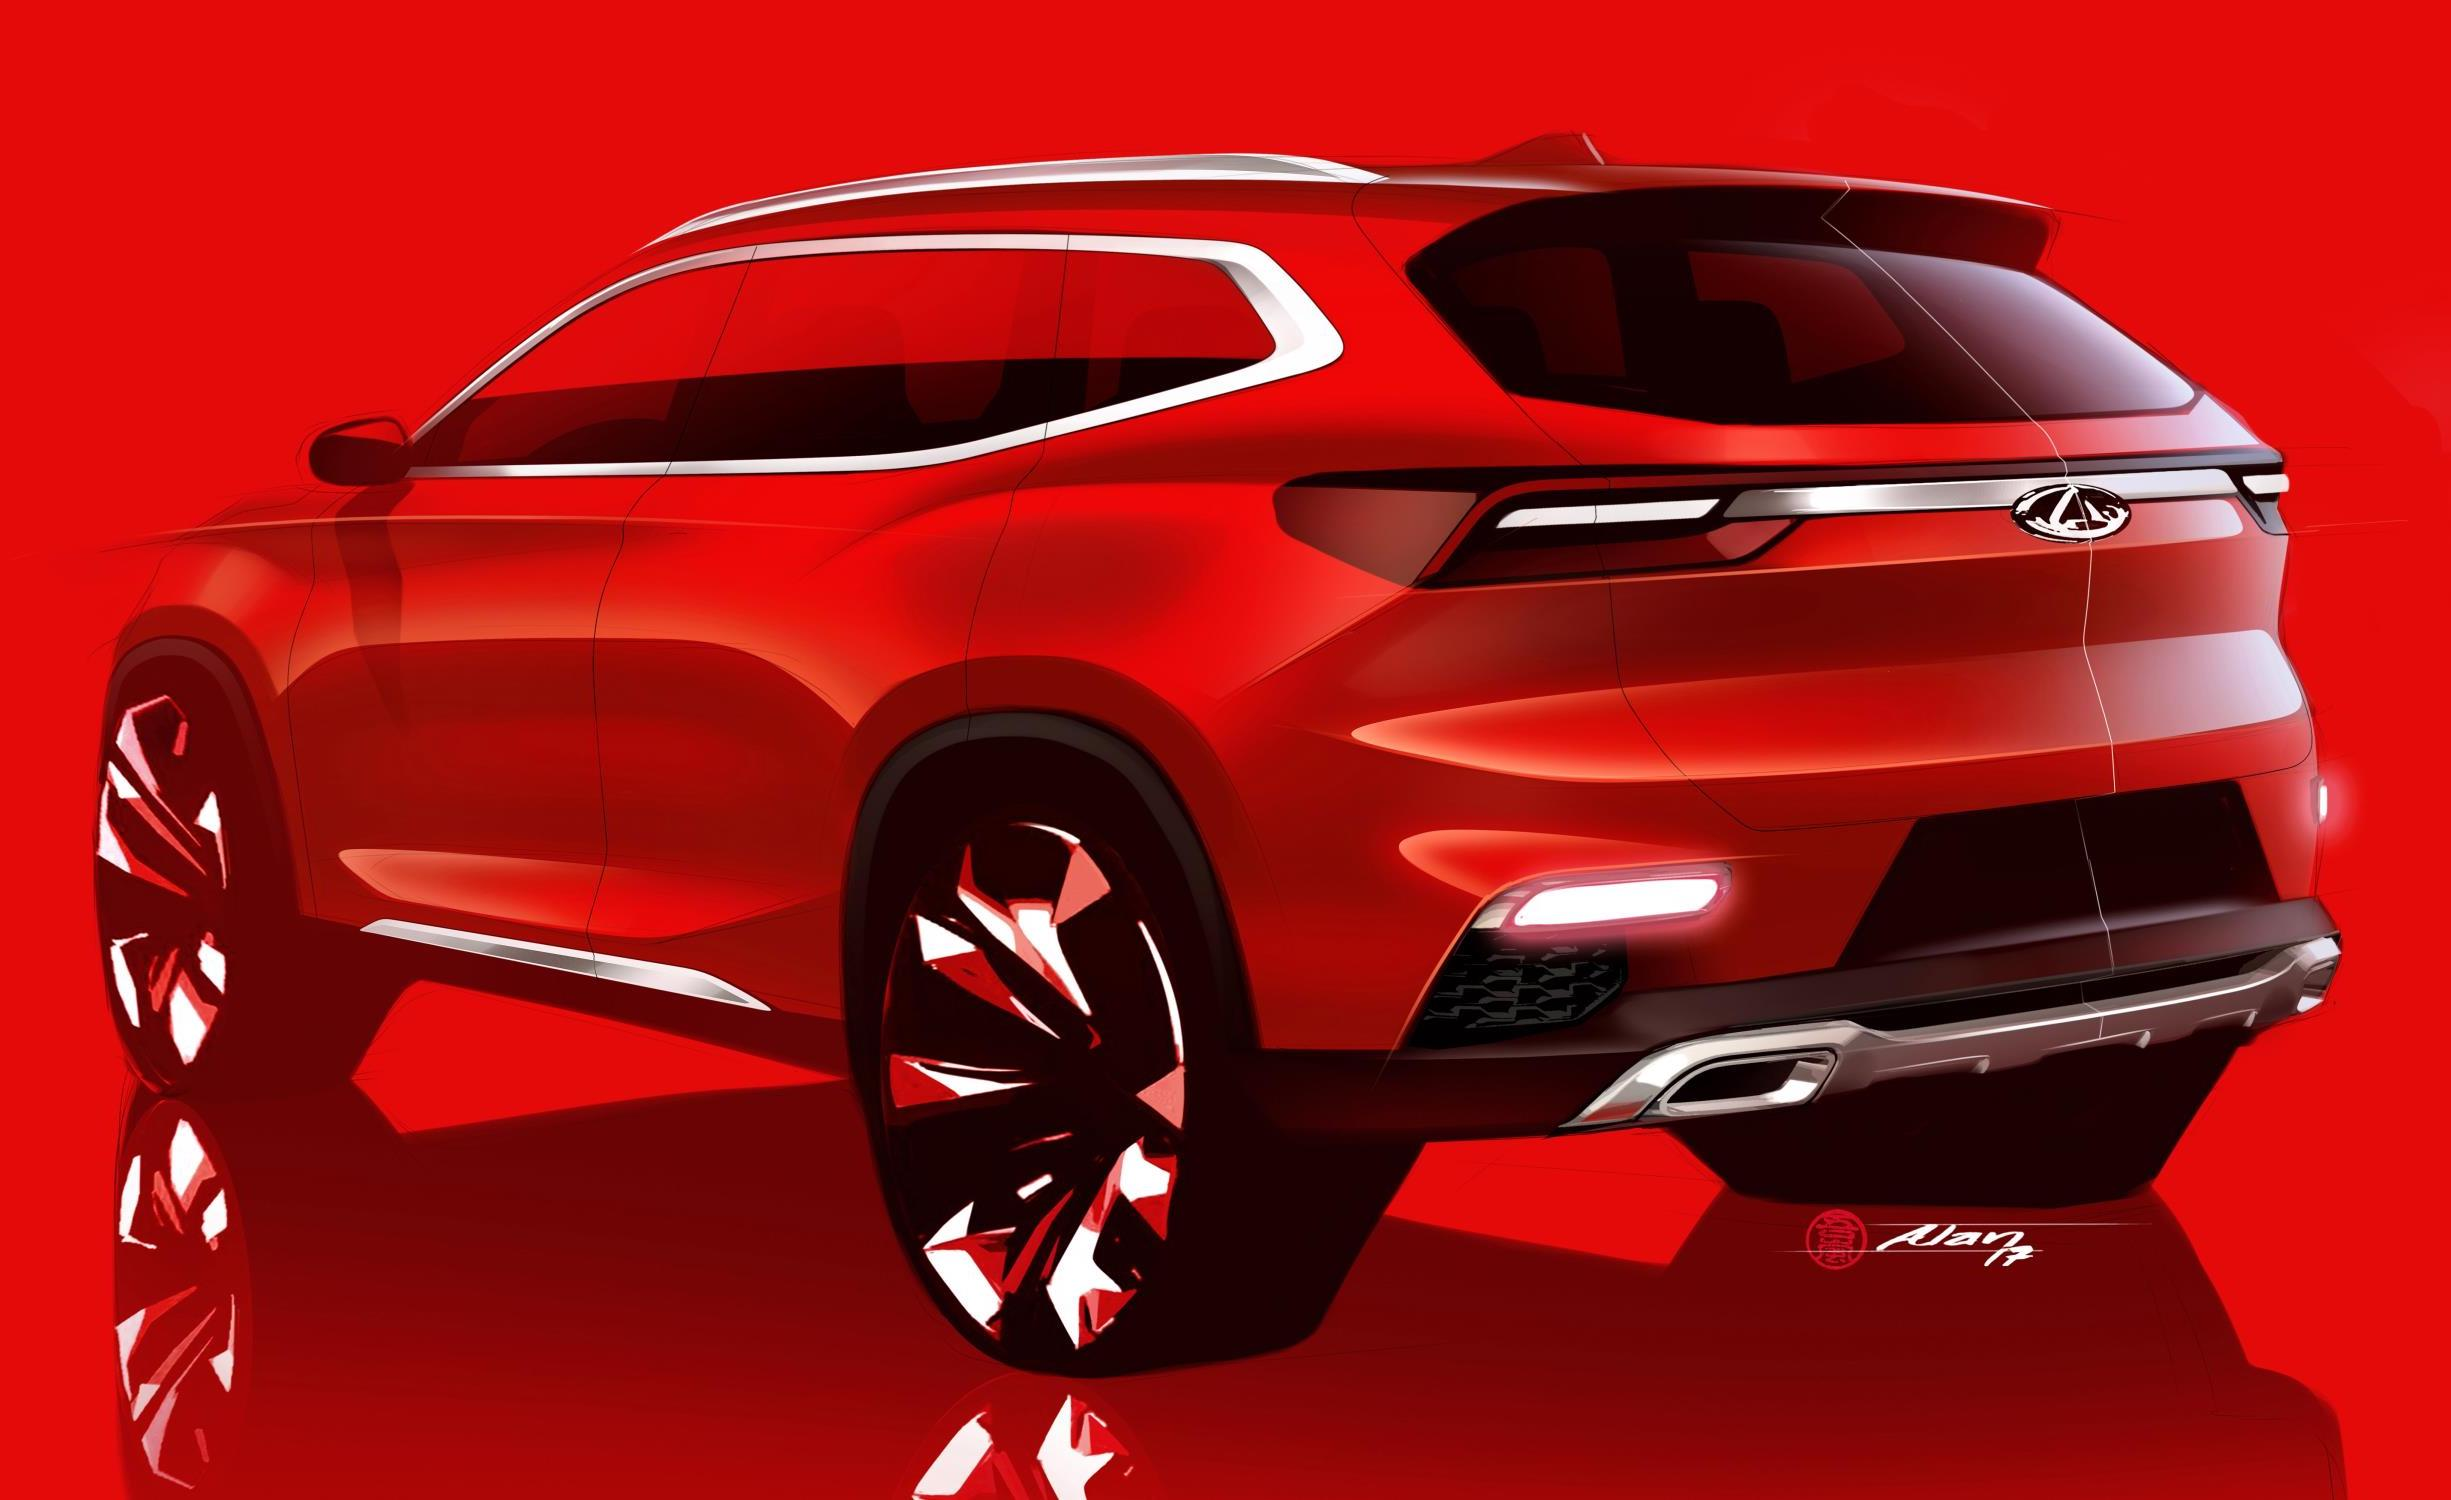 Chinese brand Chery teases new SUV for Frankfurt Motor Show